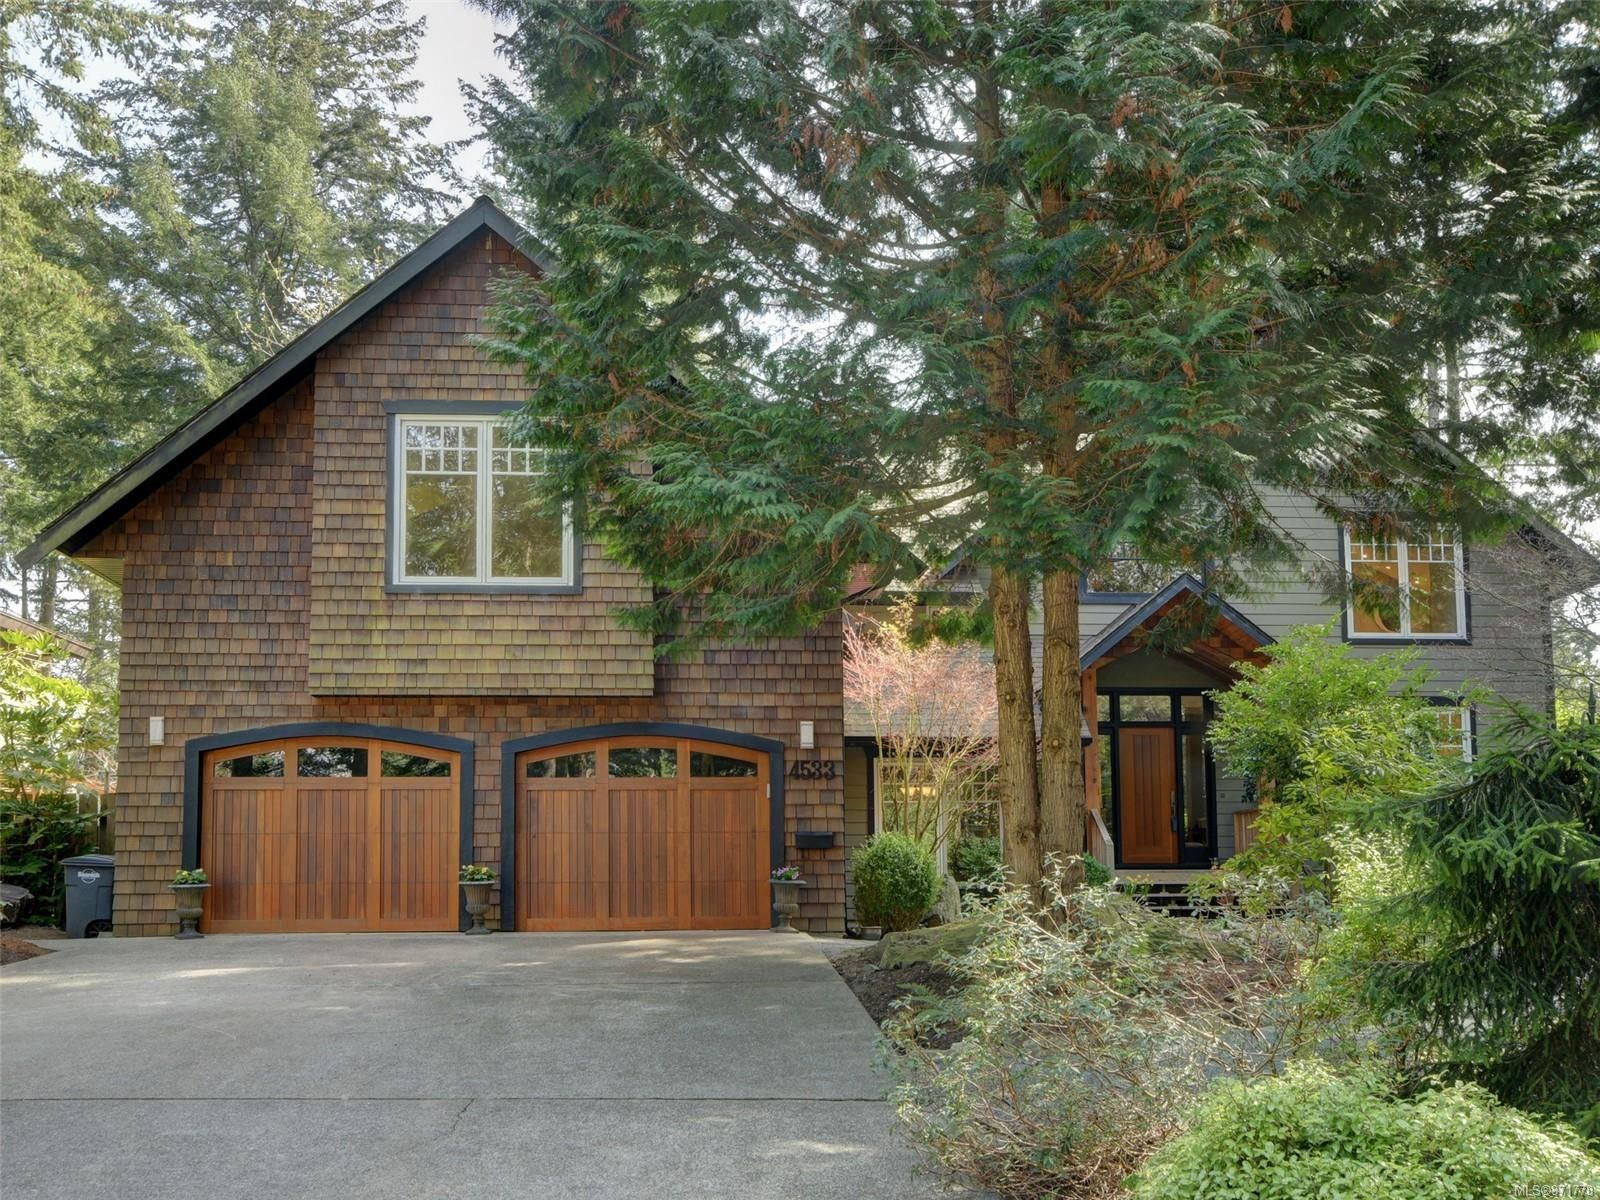 Main Photo: 4533 Rithetwood Dr in : SE Broadmead House for sale (Saanich East)  : MLS®# 871778